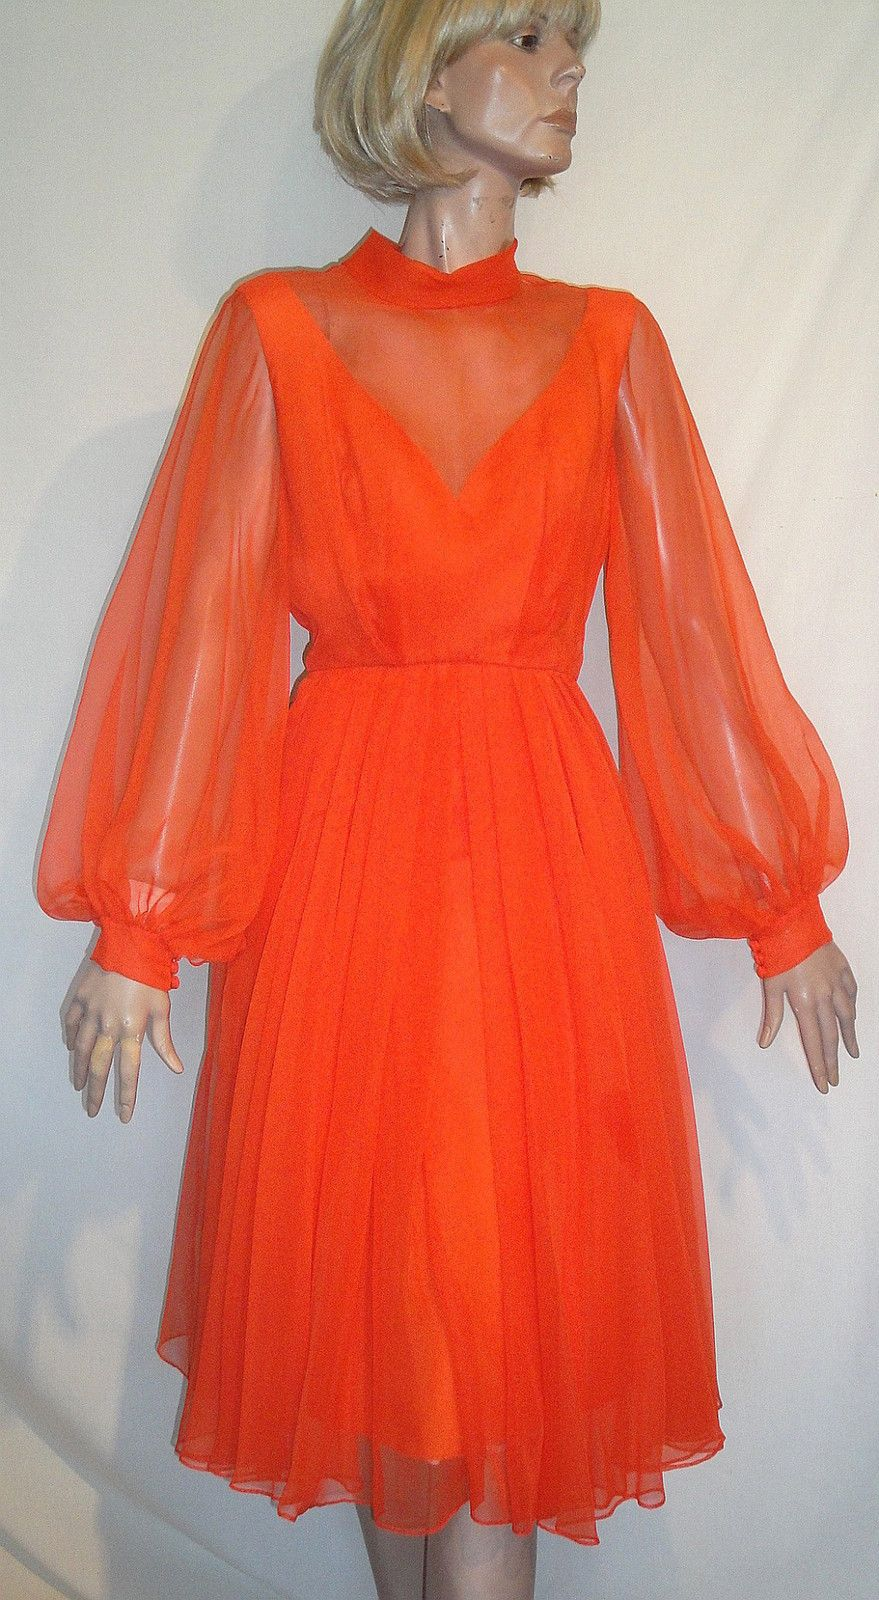 Nos helen rose gorgeous bold tangerine chiffon illusion party dress